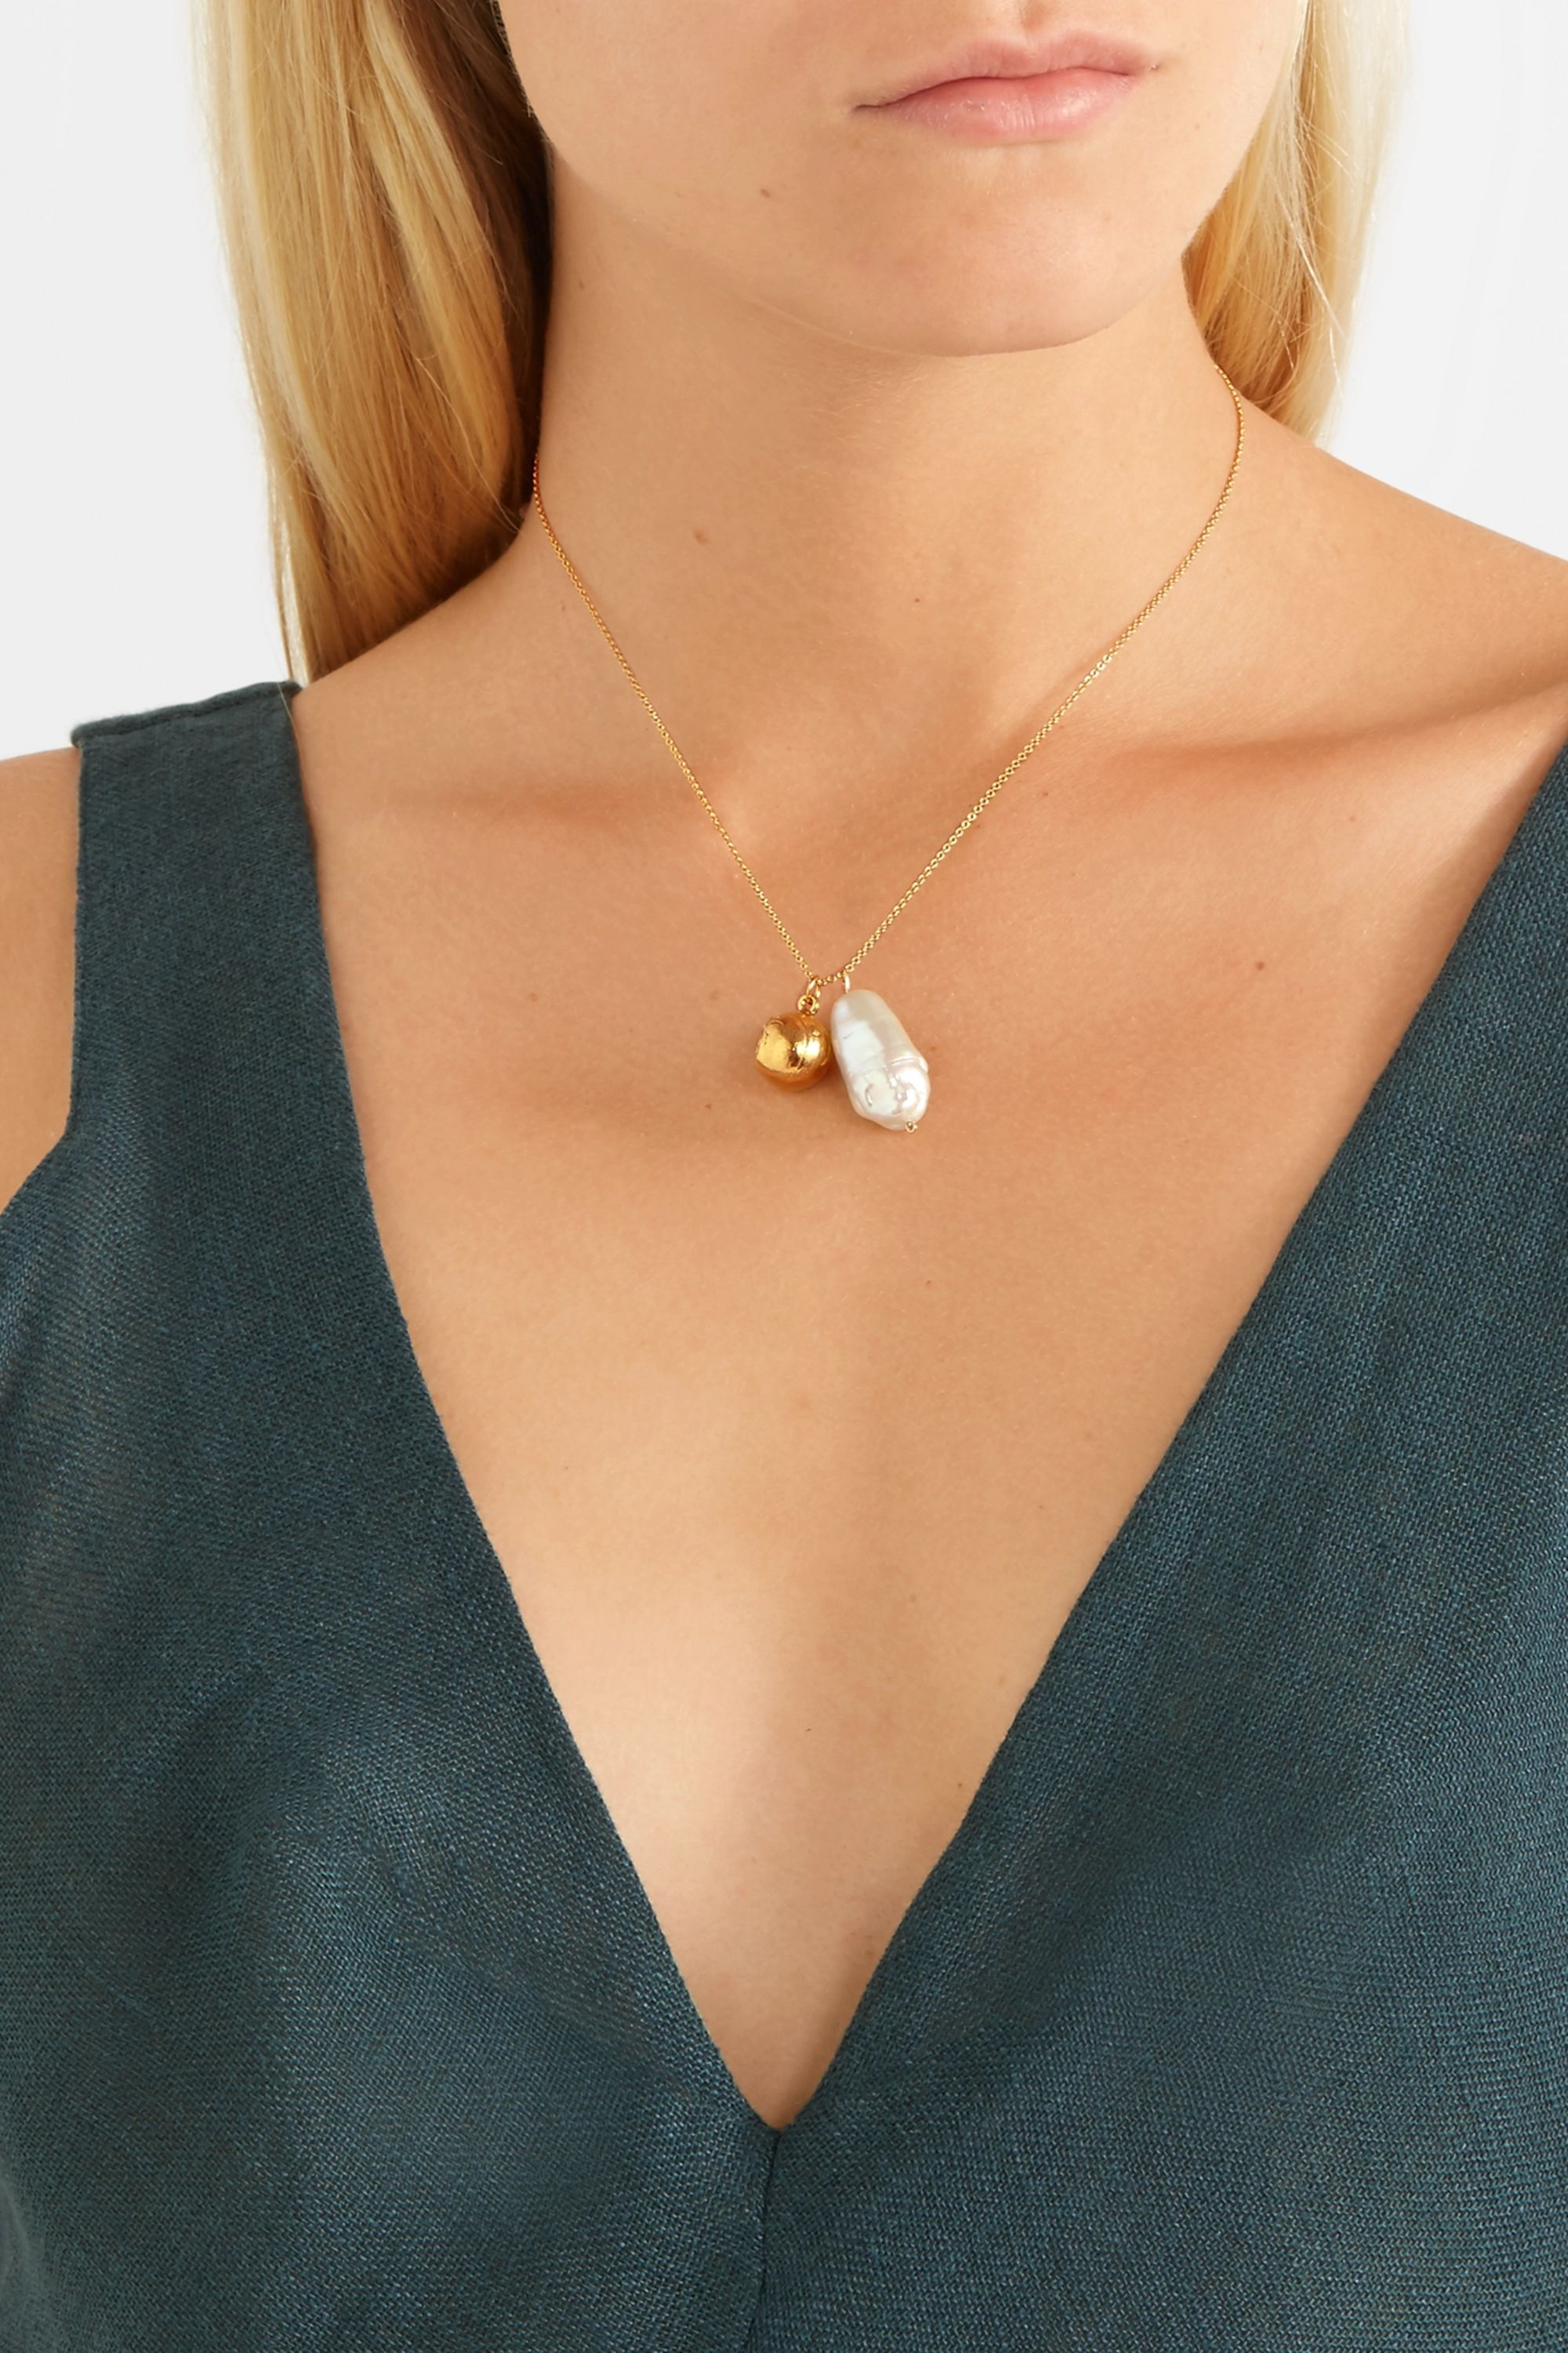 Alighieri The Remedy Chapter iii gold-plated pearl necklace